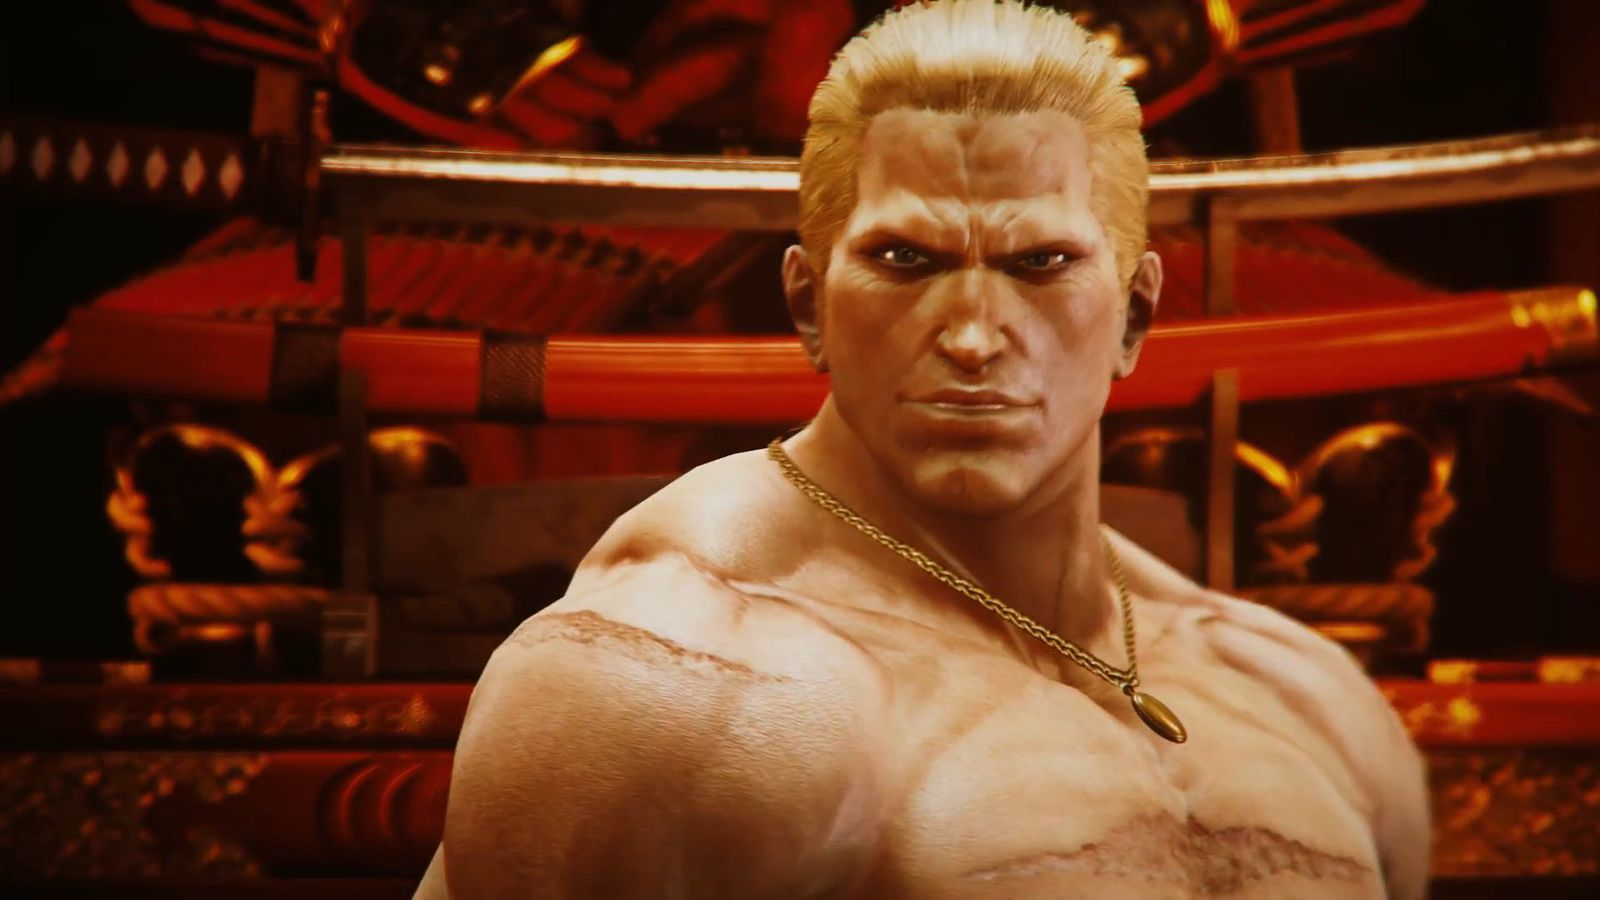 Geese Howard from Fatal Fury is Tekken 7's new character